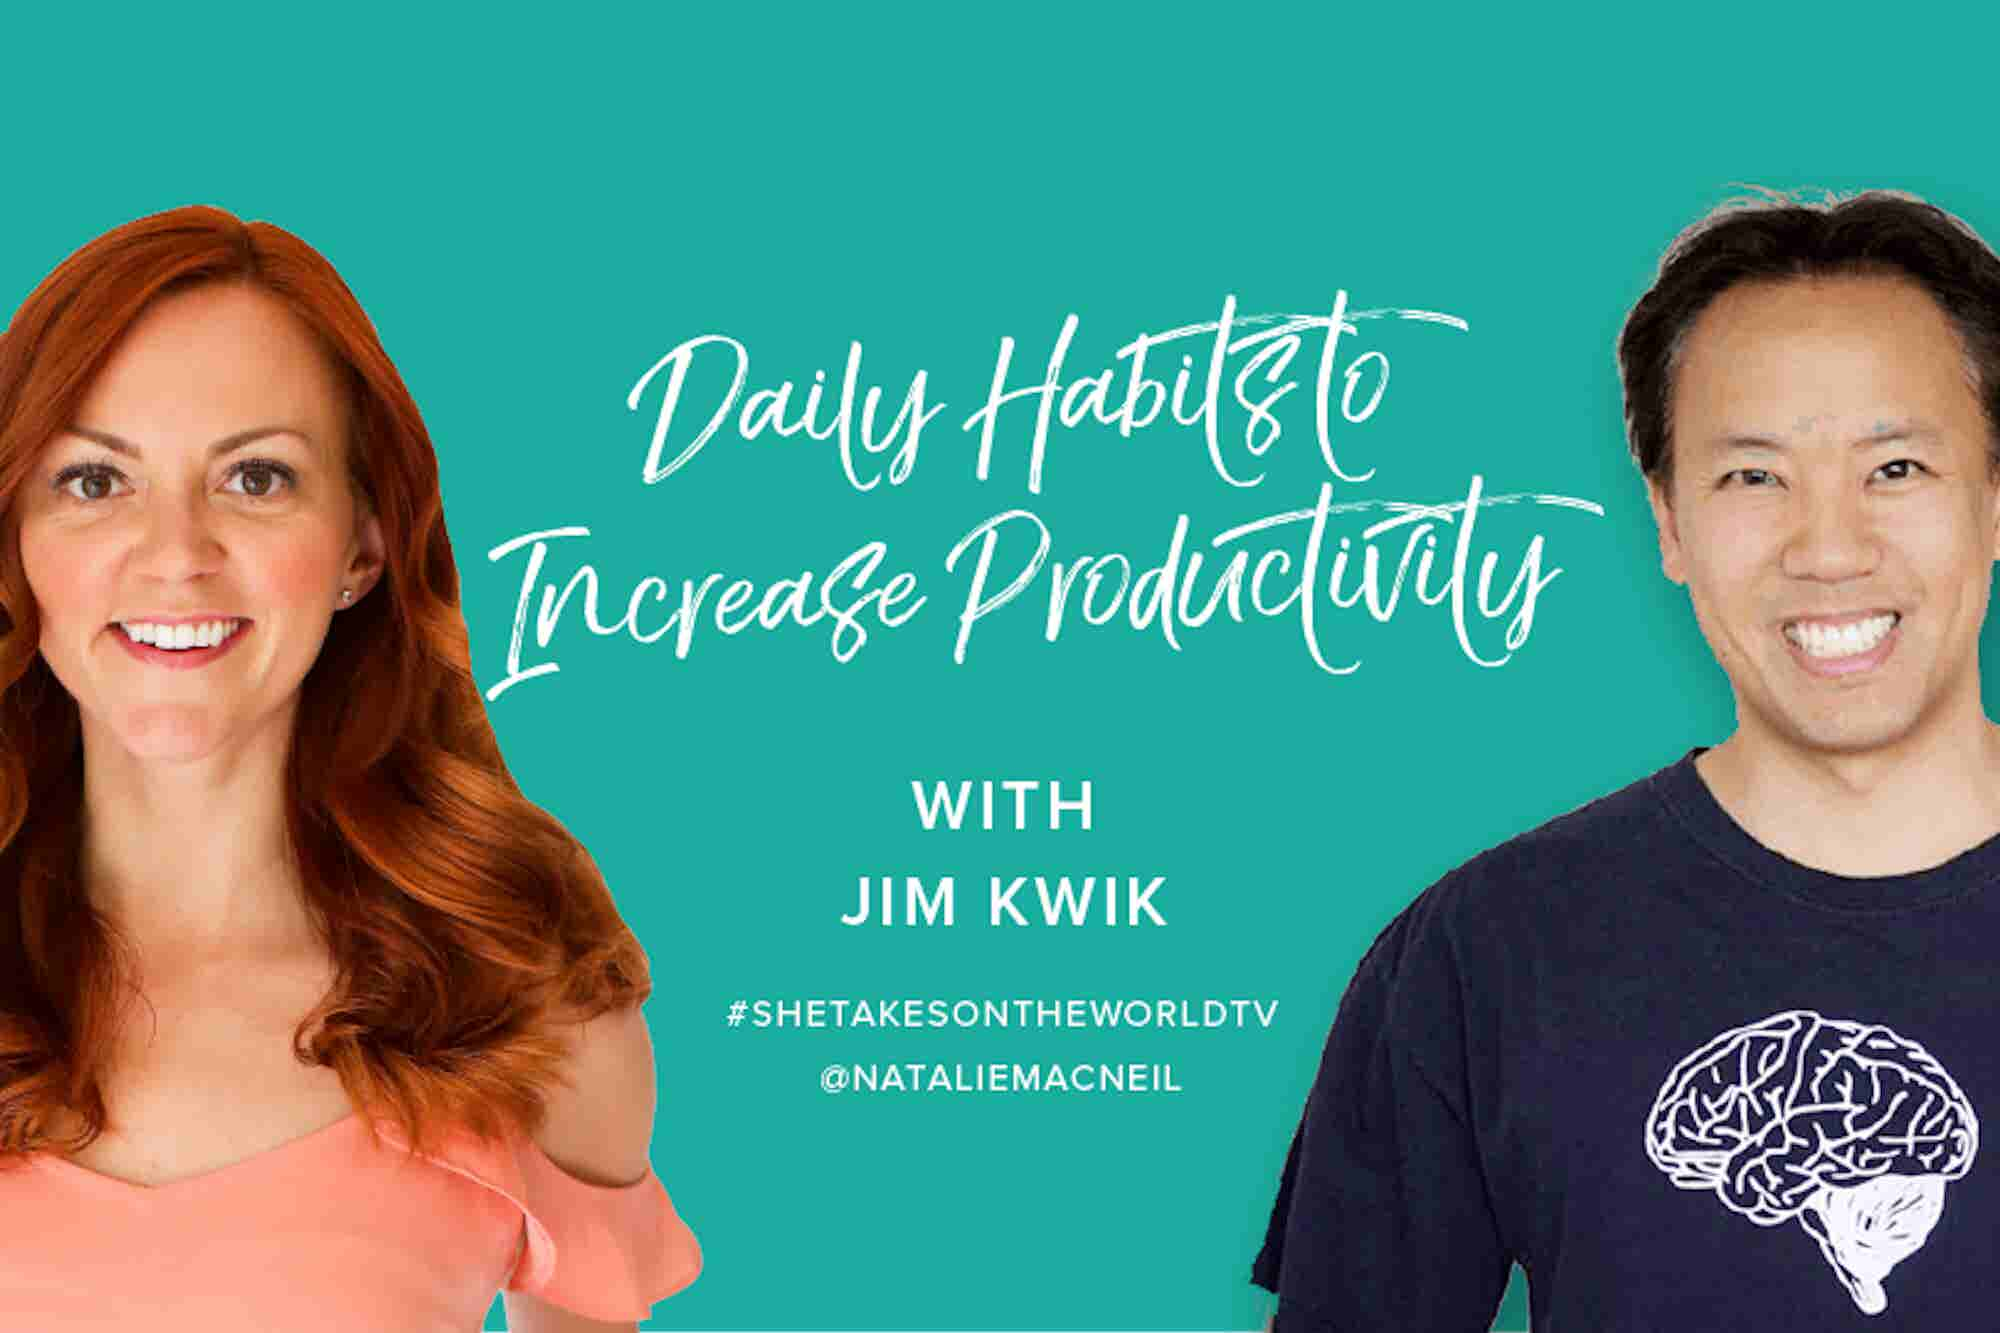 Daily Habits That Will Help Increase Productivity